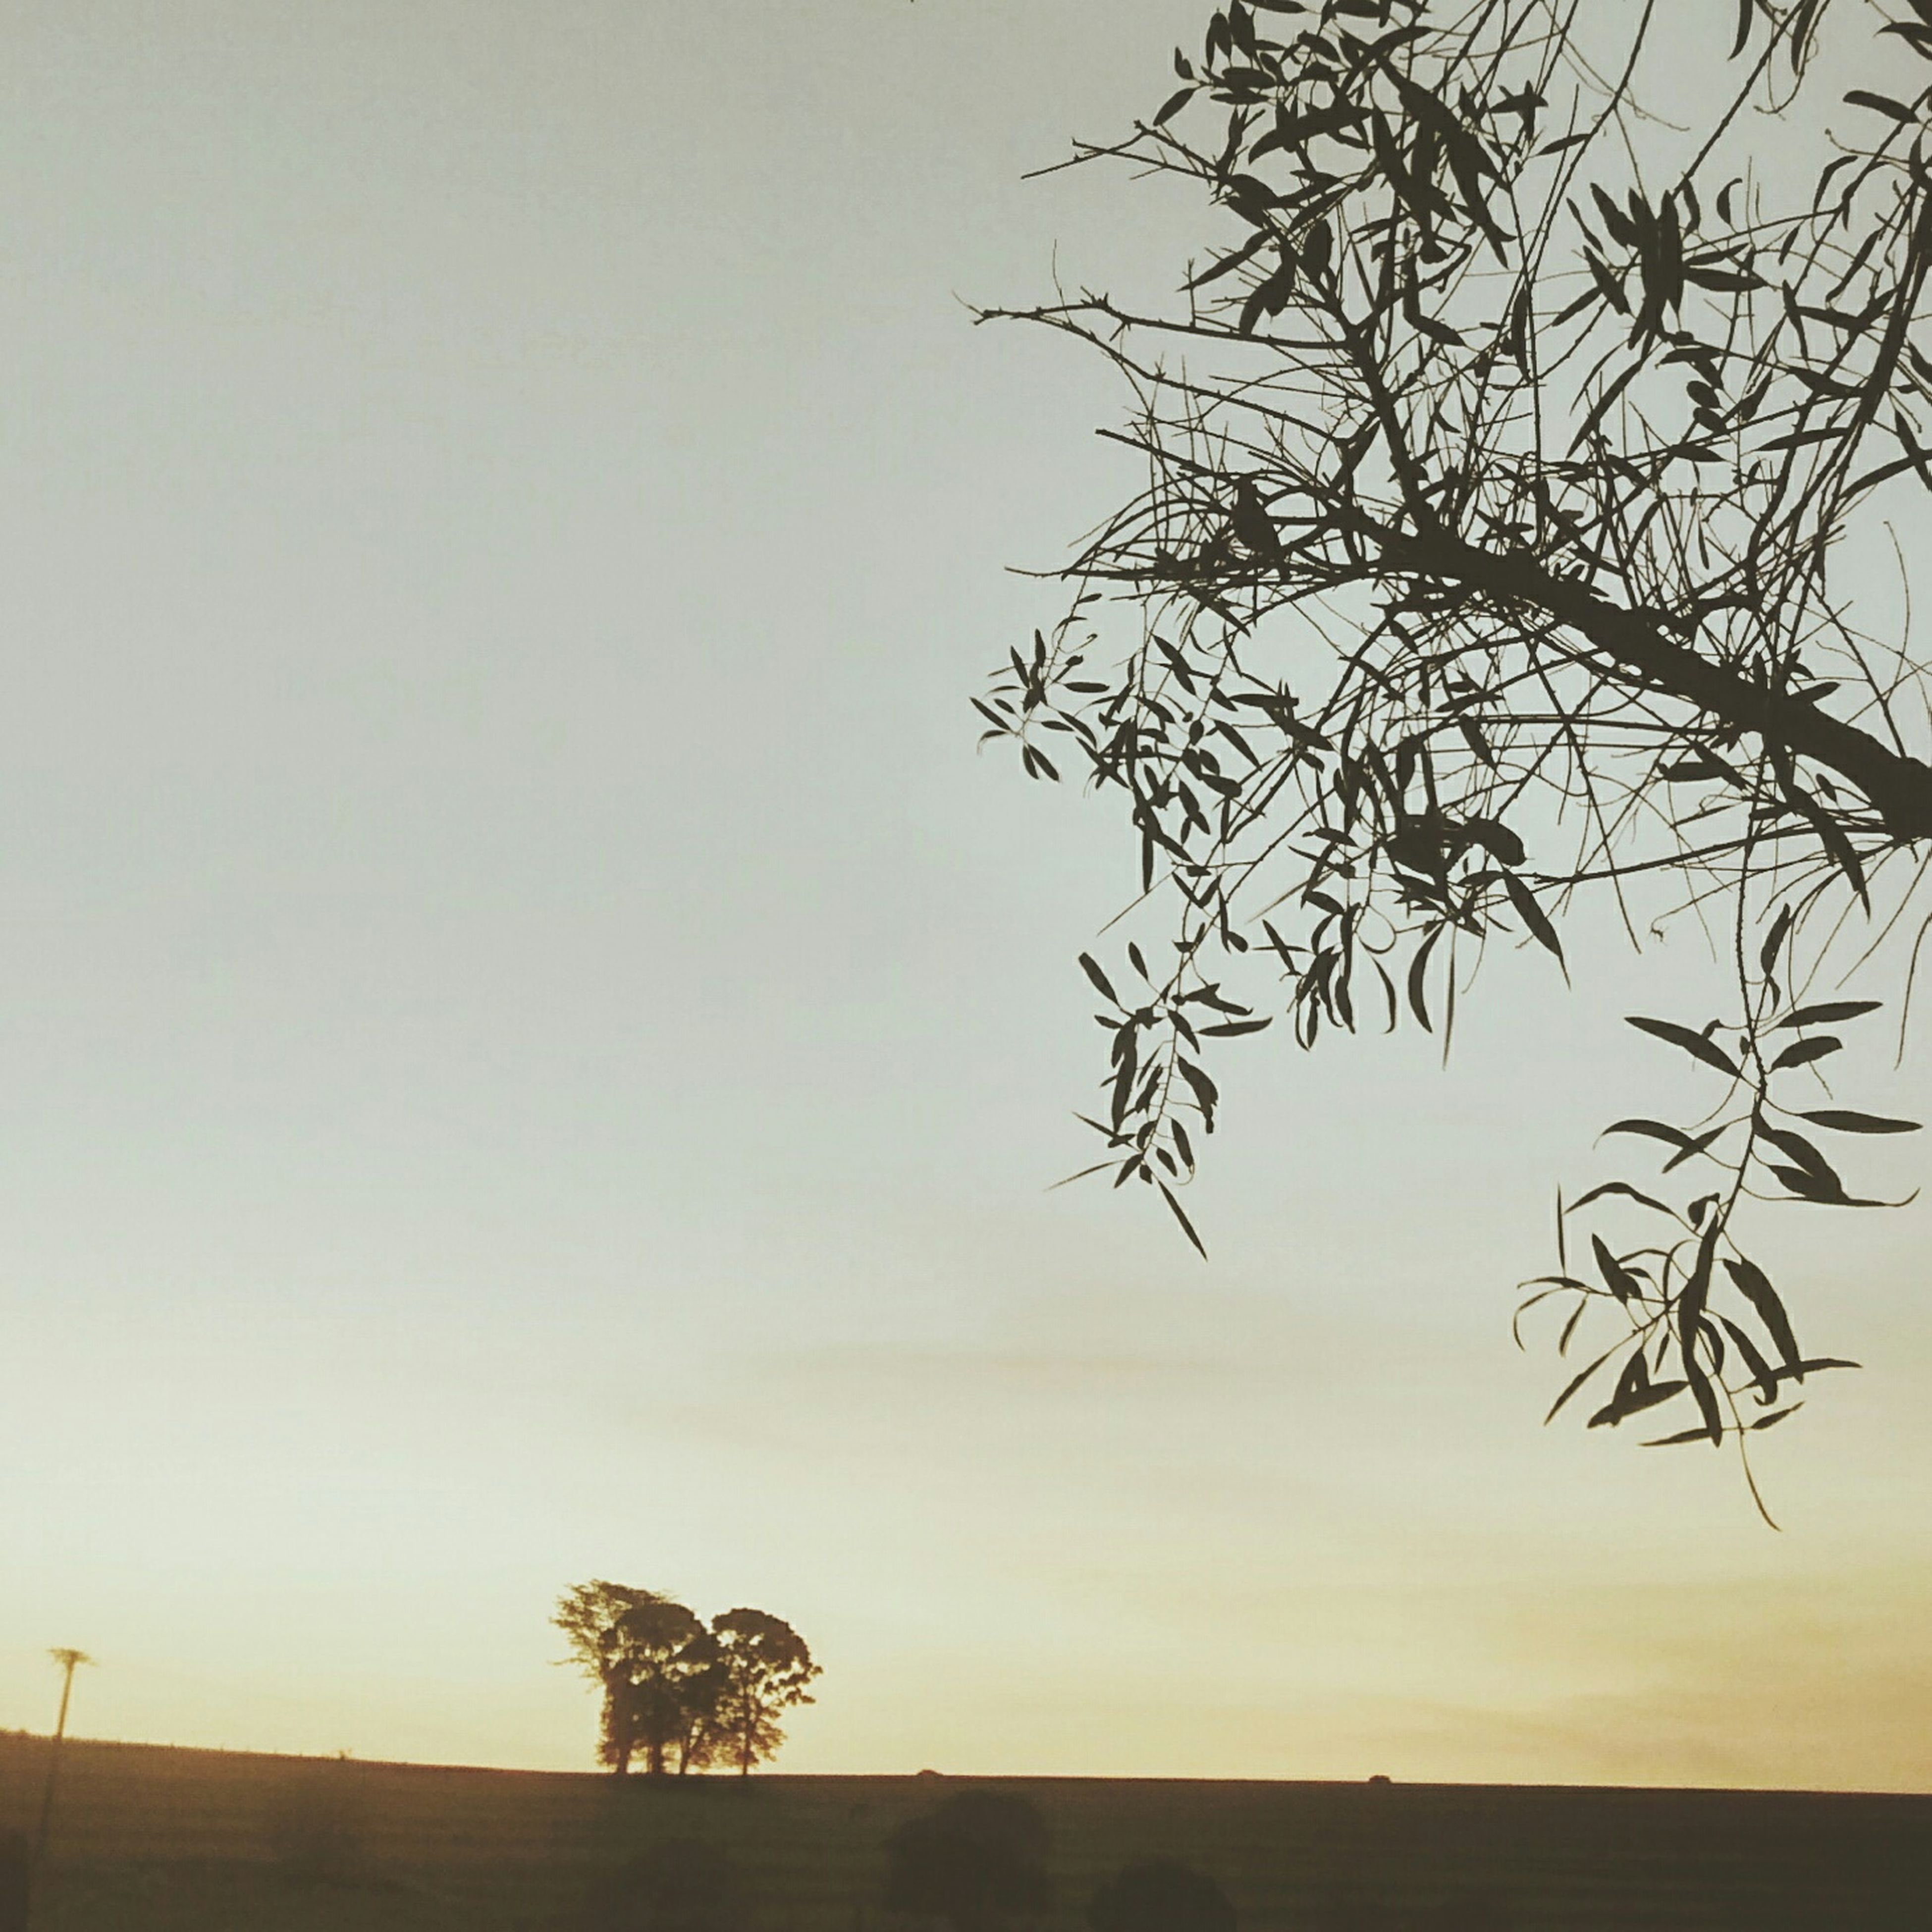 tree, clear sky, tranquility, tranquil scene, branch, bare tree, nature, scenics, beauty in nature, copy space, landscape, silhouette, growth, single tree, sky, field, tree trunk, sunset, non-urban scene, no people